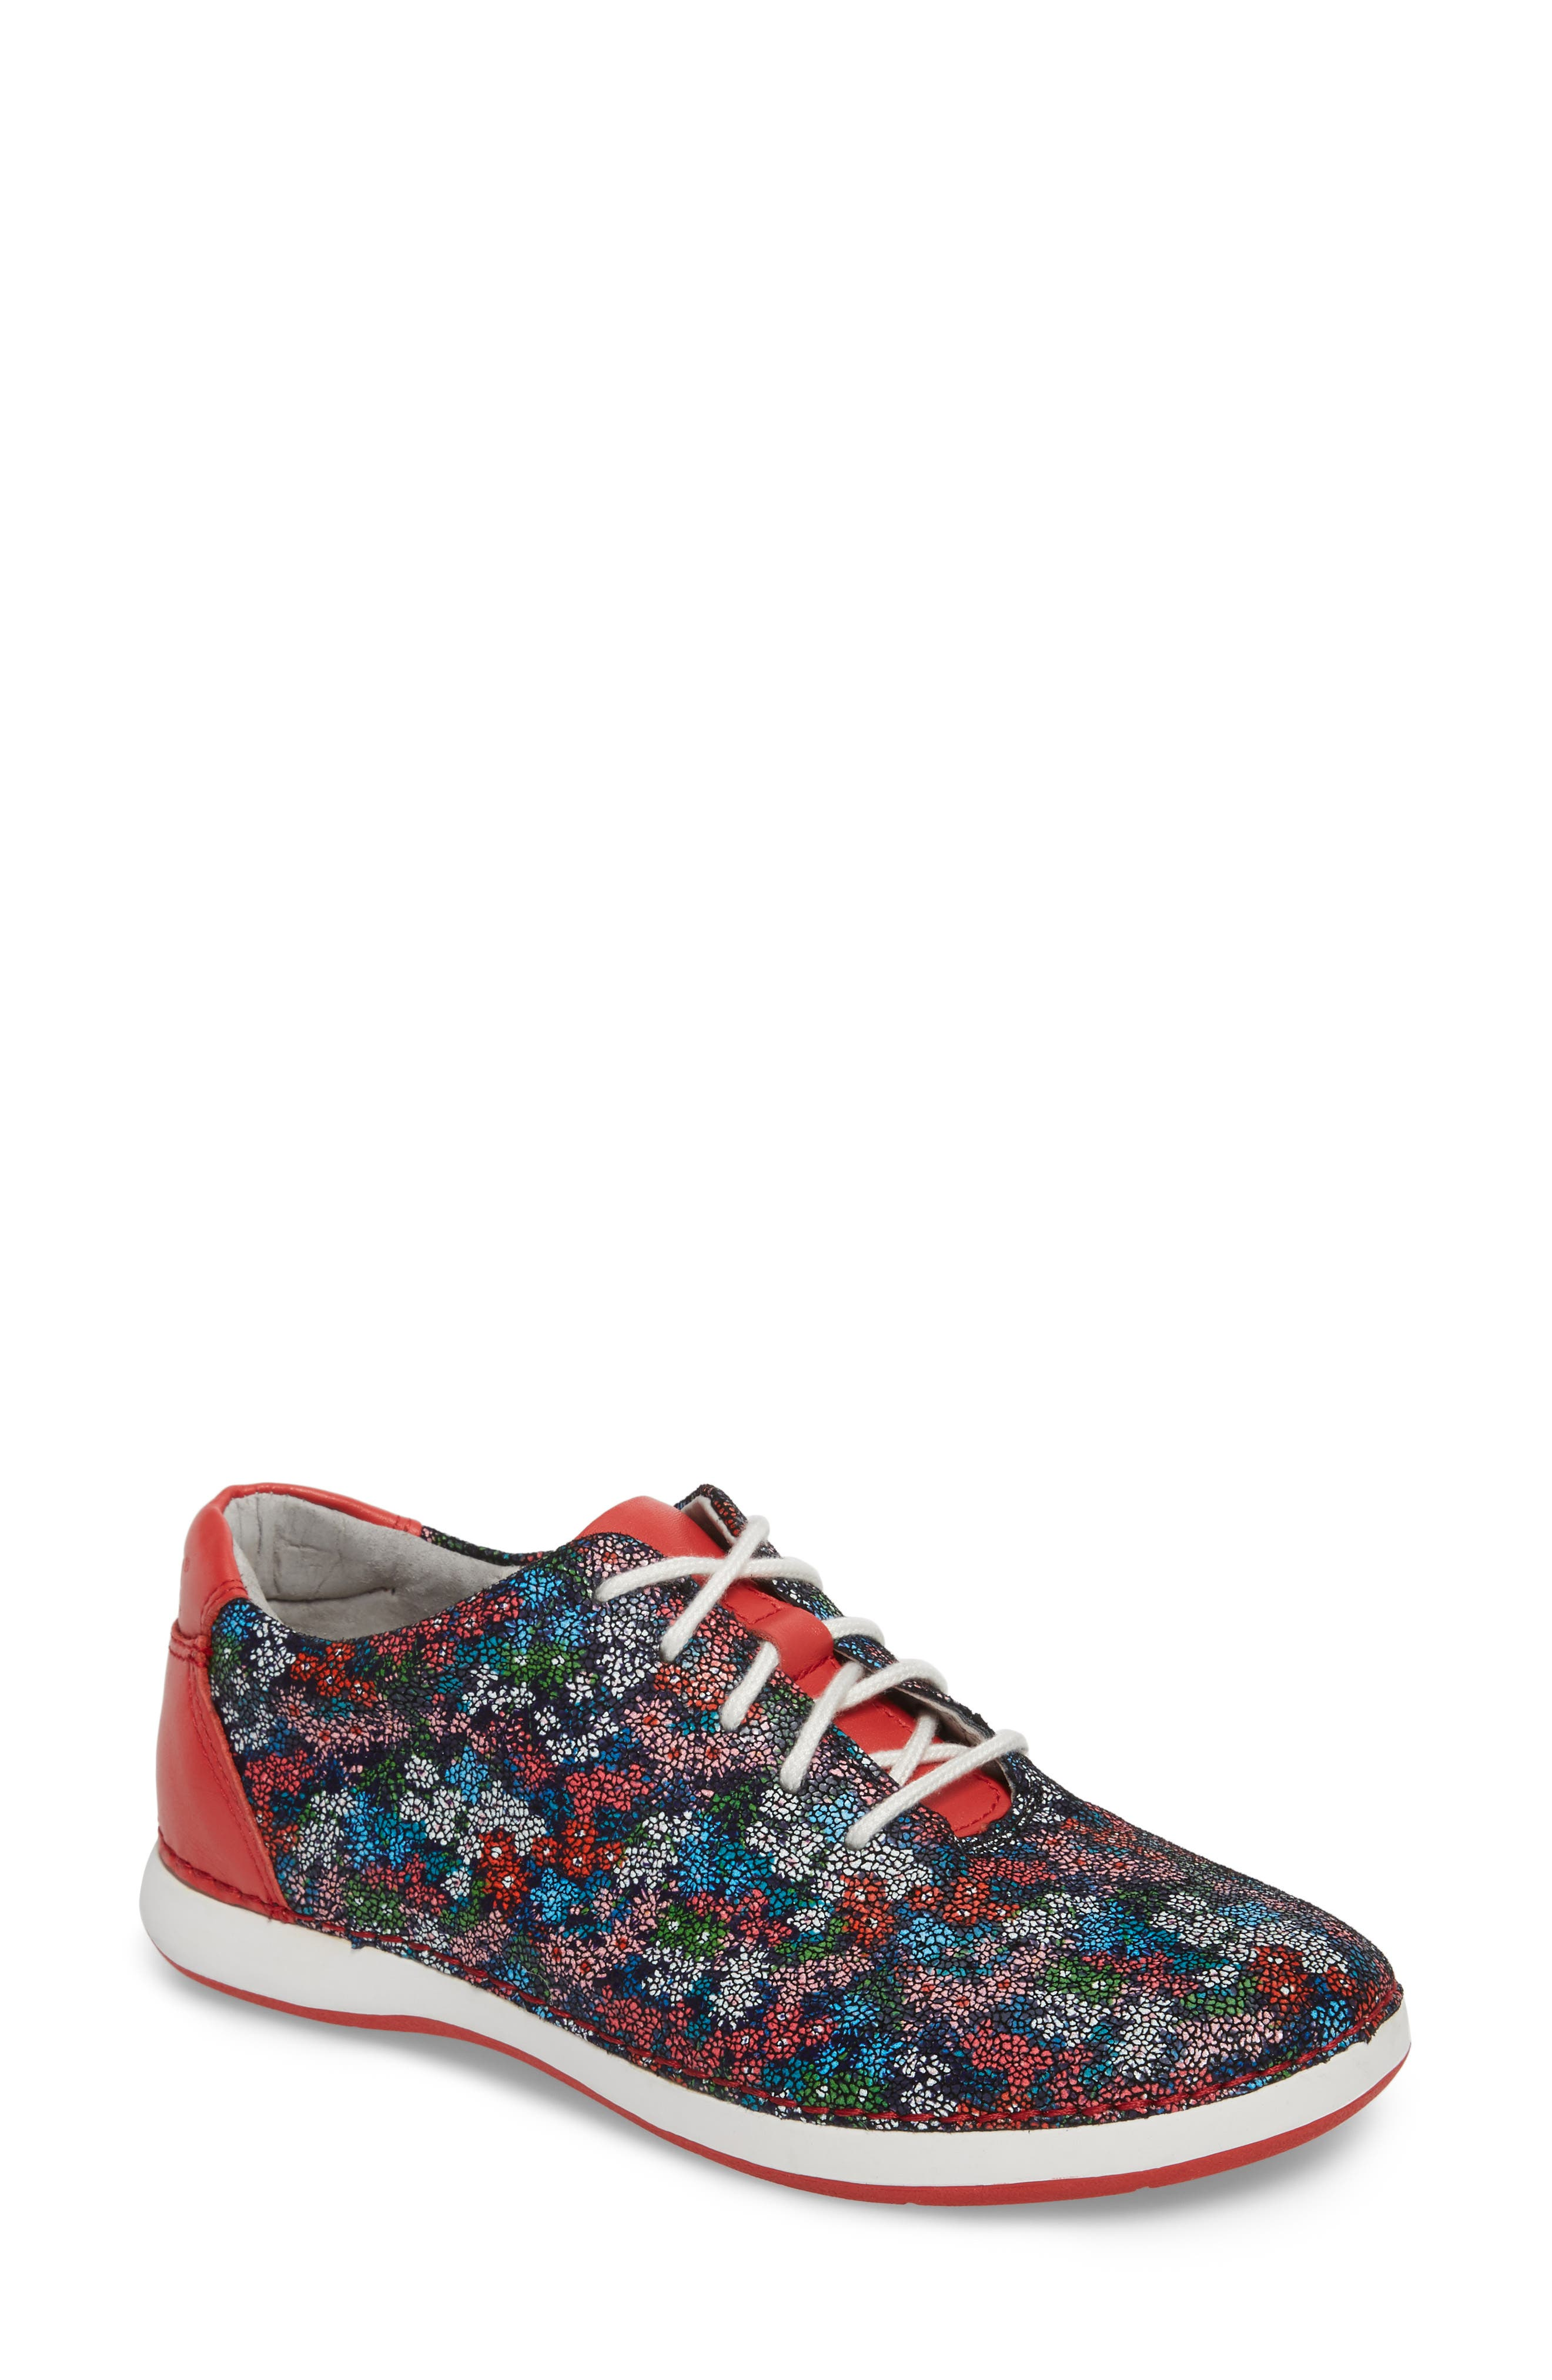 Essence Lace-Up Leather Oxford,                             Main thumbnail 1, color,                             Botanncool Leather